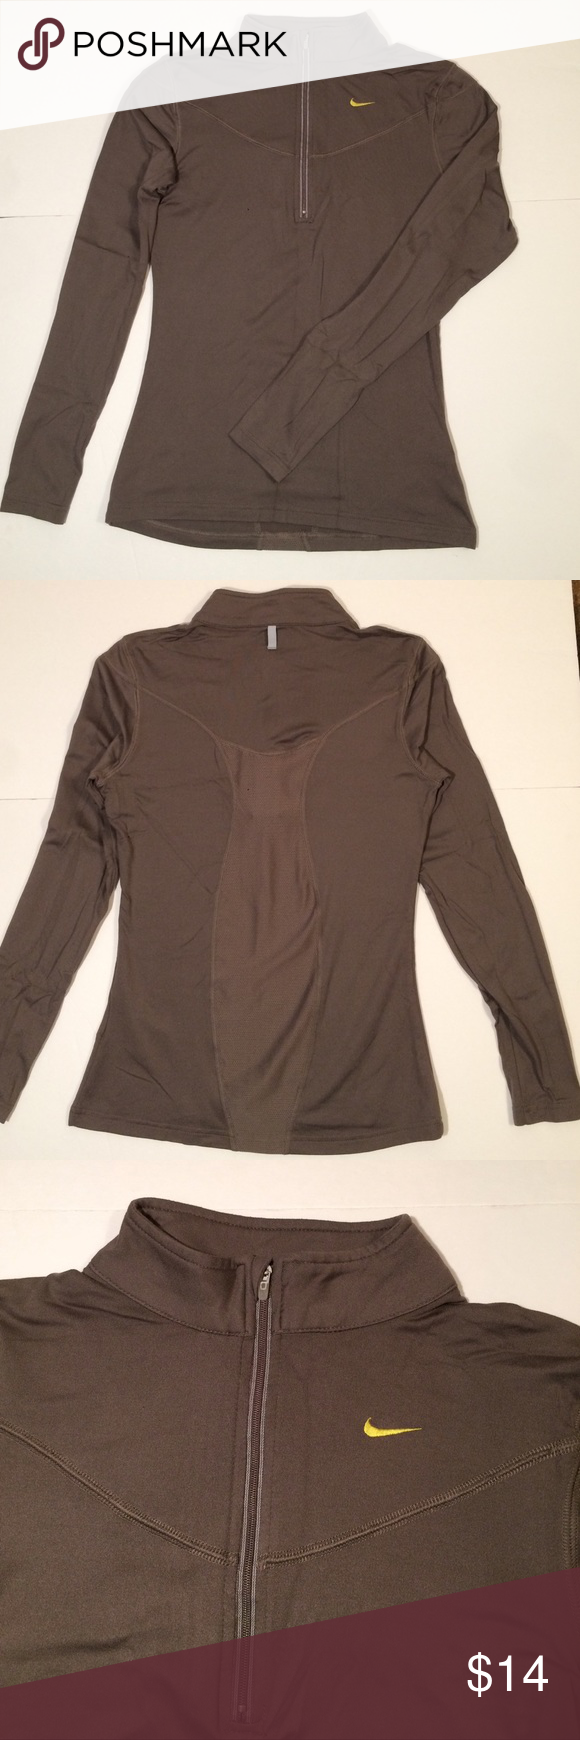 """Nike Long Sleeve Running Top This Nike top is in good condition. It has an embroidered yellow swoosh and a reflective lining around the zipper. This is a size small and measures approximately 15"""" from shoulder to shoulder and 23.5"""" from shoulder to bottom hem. Nike Tops Tees - Long Sleeve"""